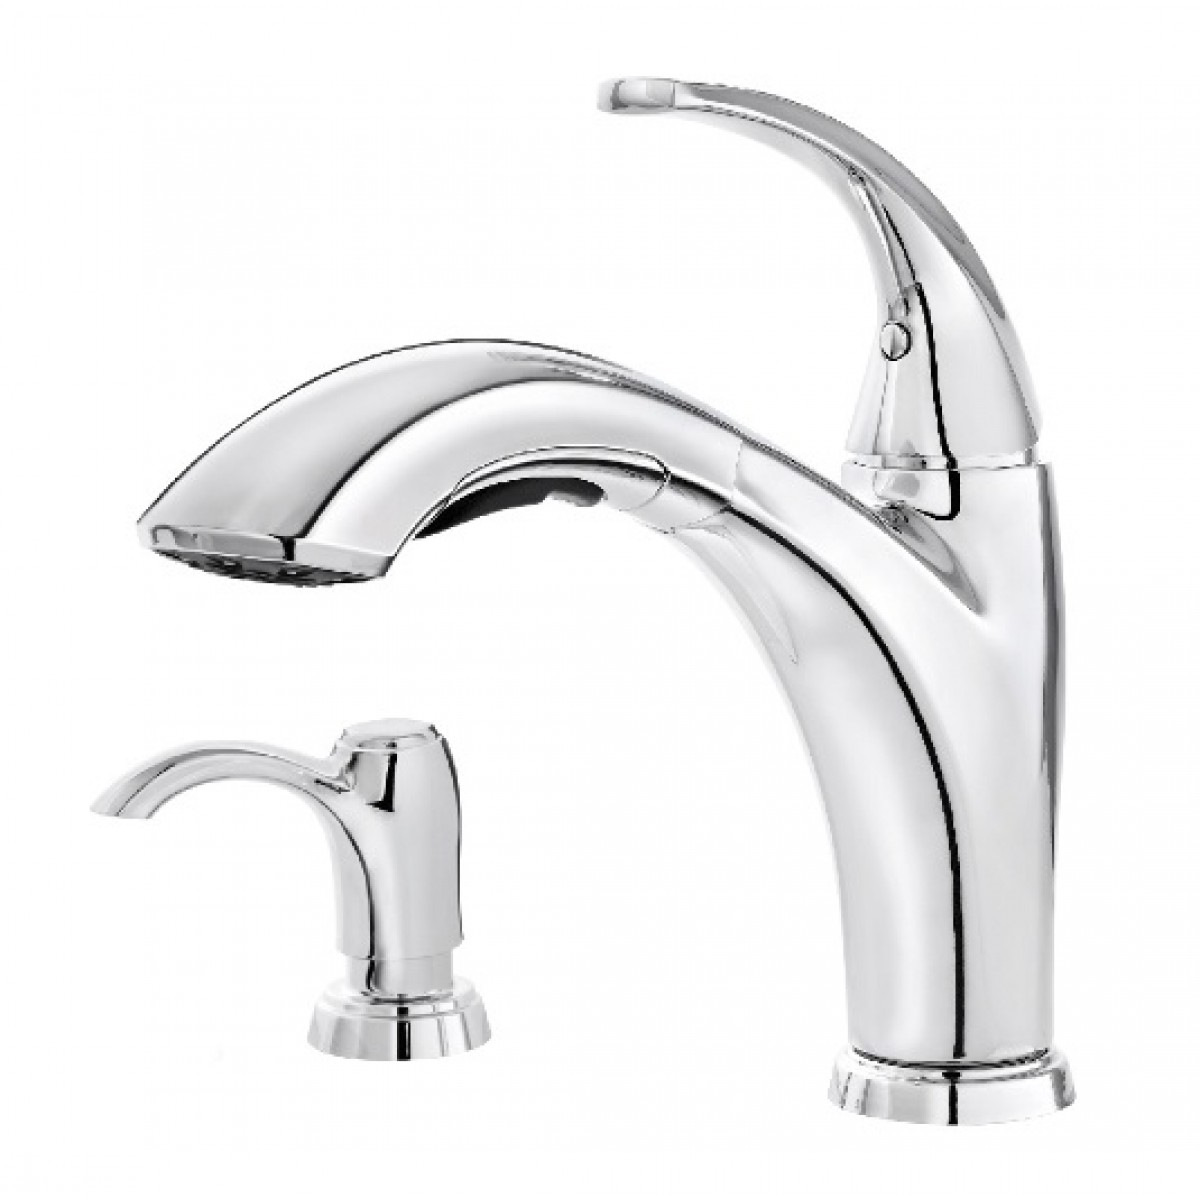 Pfister Selia Lead Free Single Handle Pull Out Chrome Kitchen Faucet ...